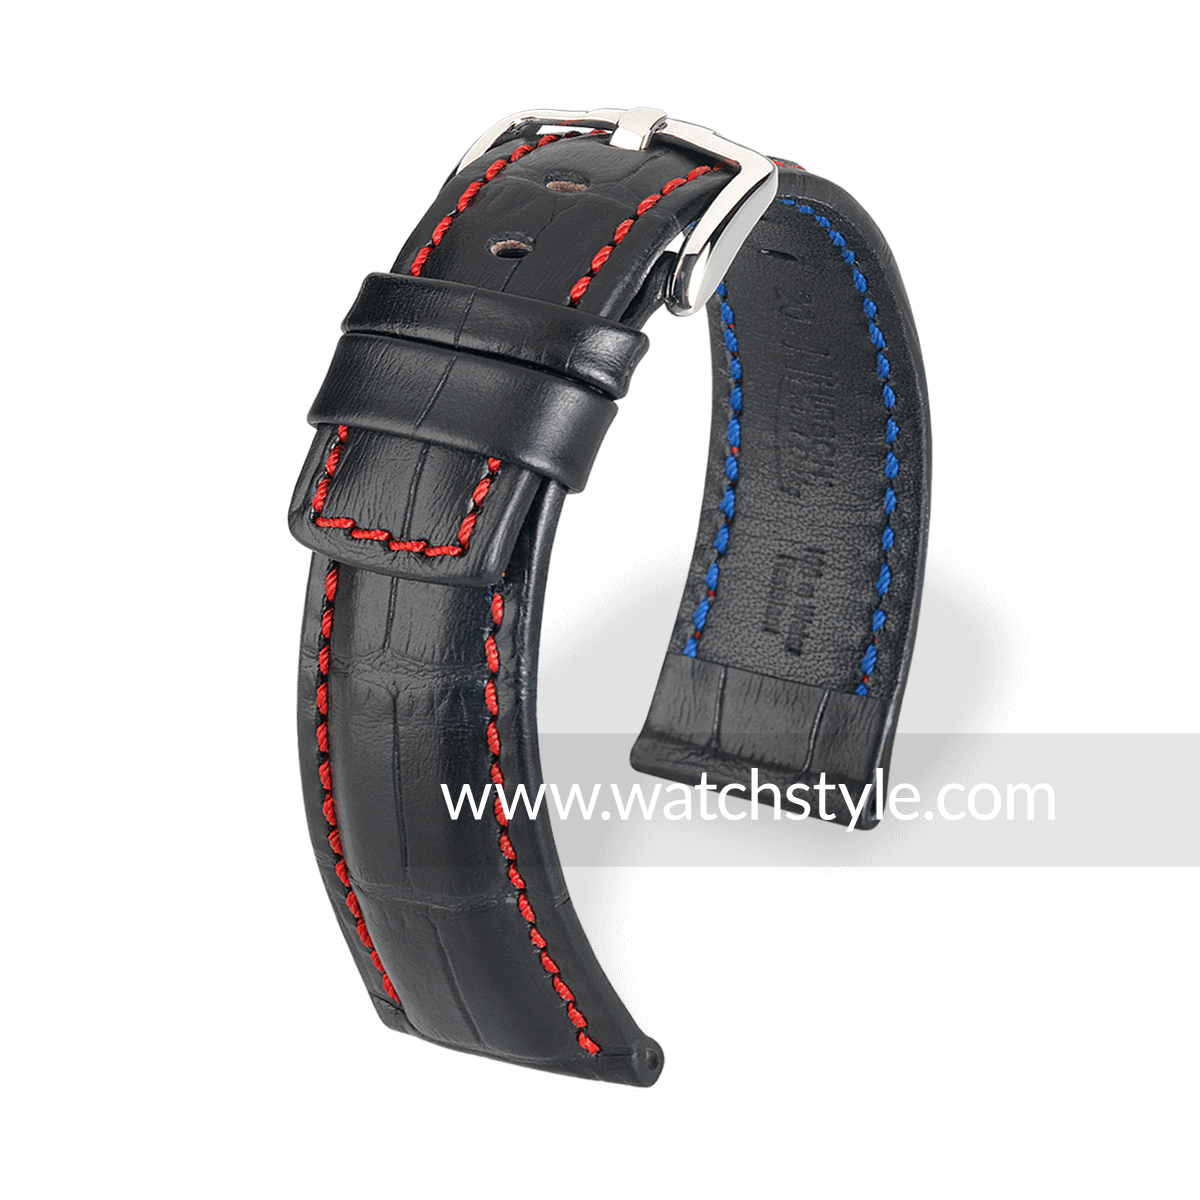 3c0db691a WatchStyle® - High-End Watch Bands, Straps & Bracelets